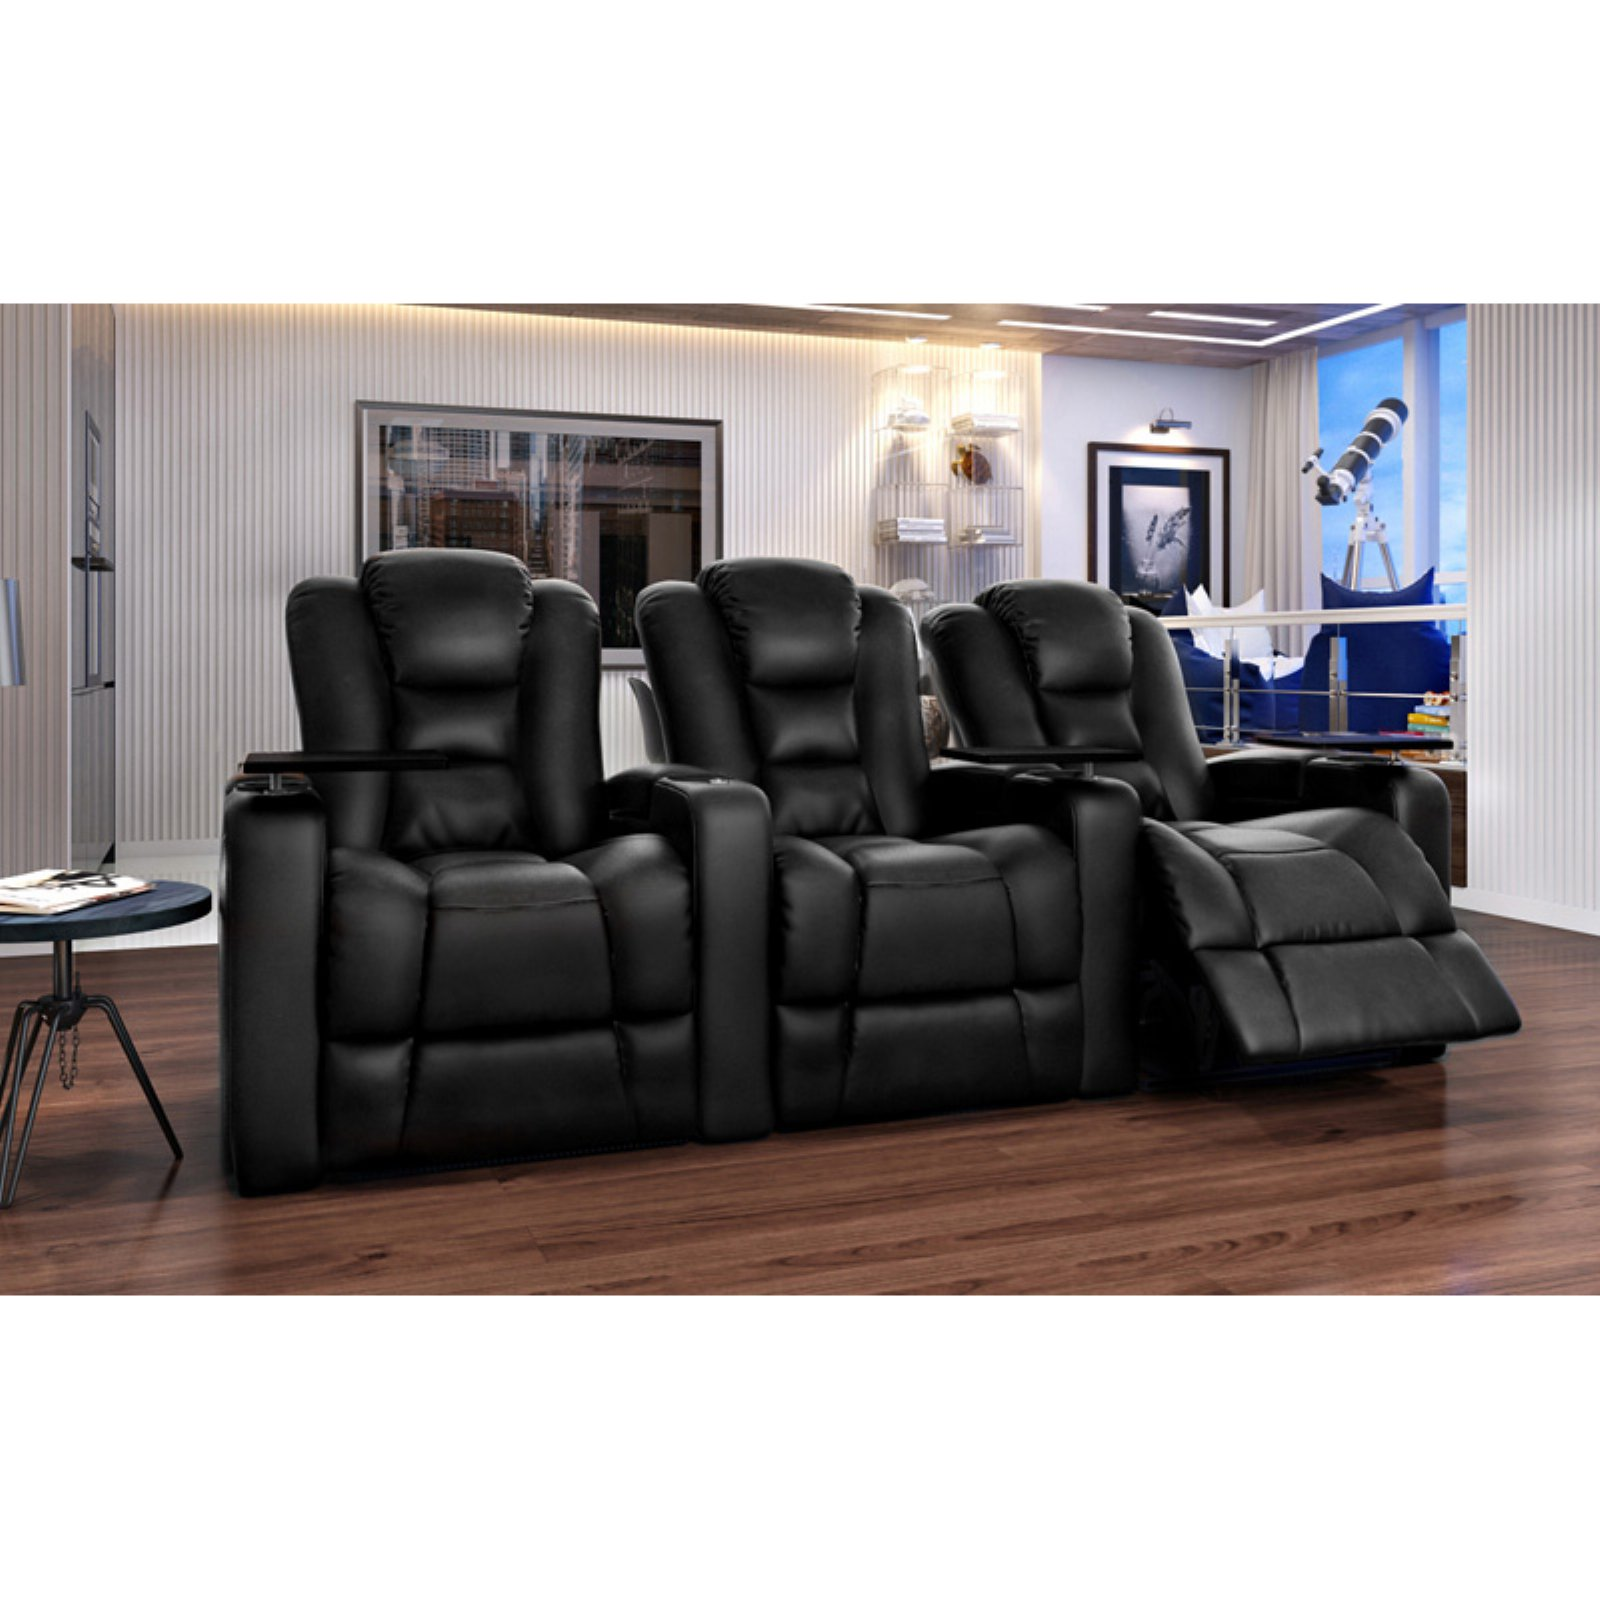 Octane Mega XL950 3 Seater Power Recline Bonded Leather Home Theater Seating